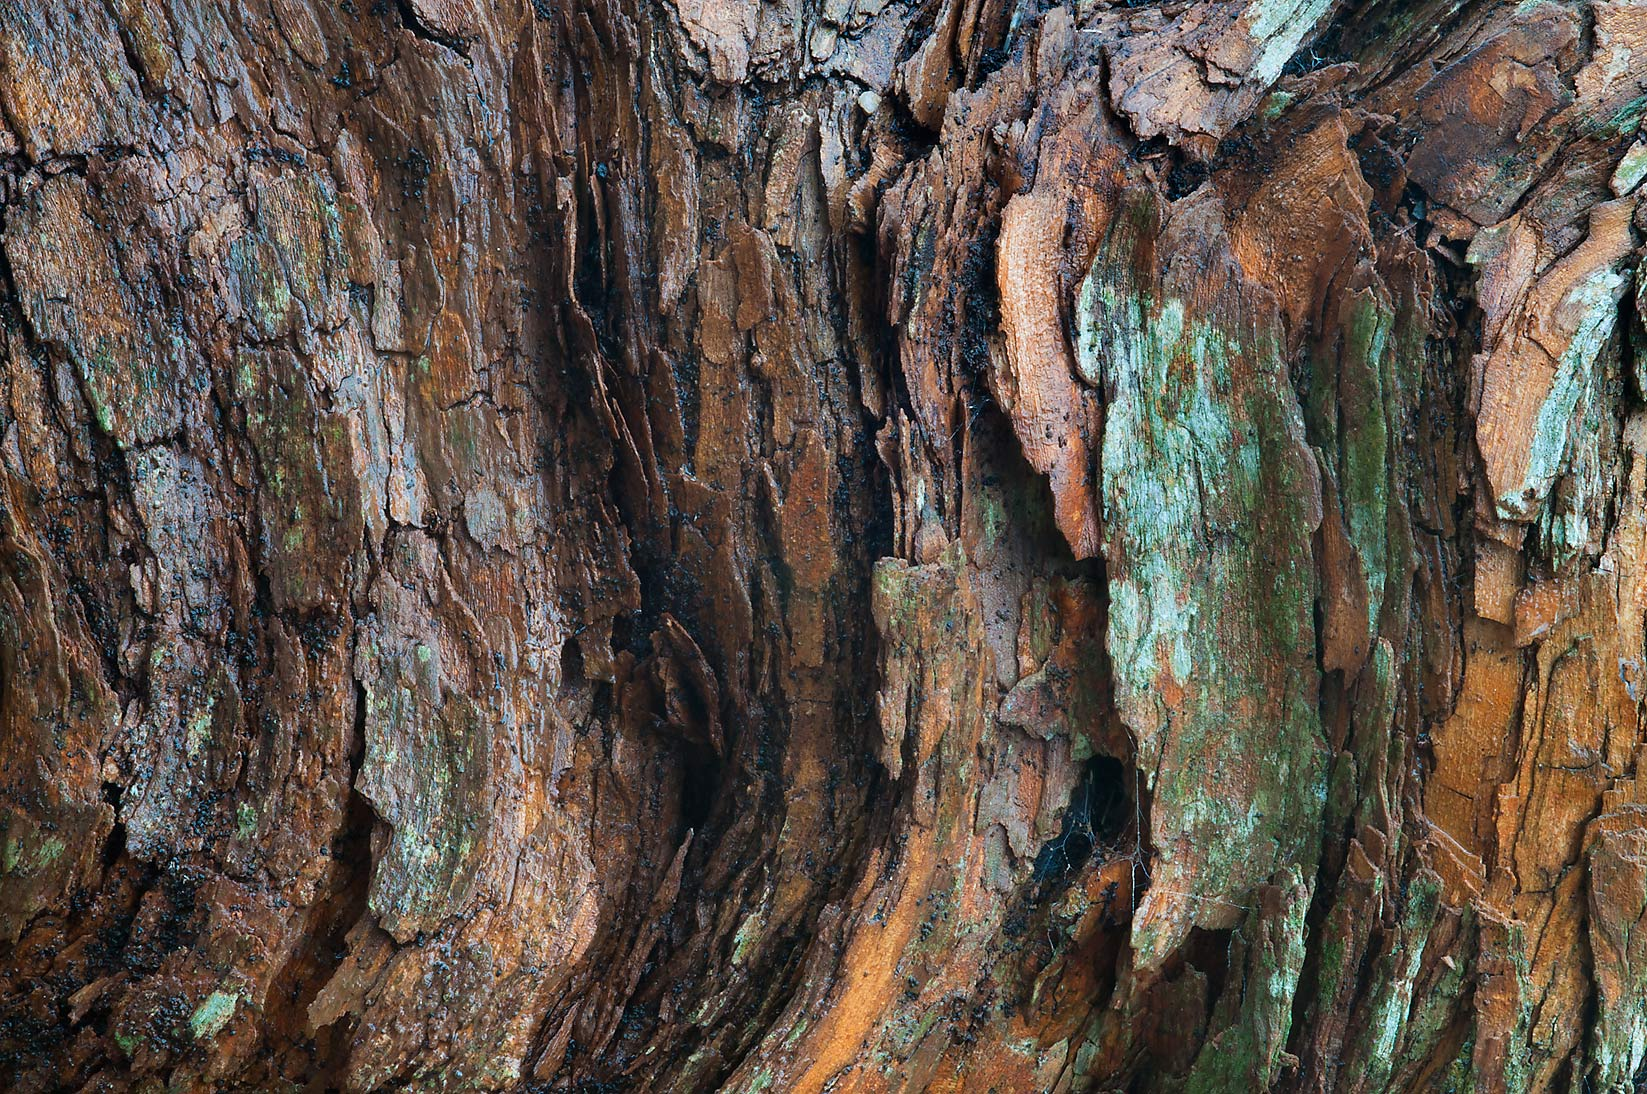 Bark of Horse apple (osage orange) in Washington...State Historic Site. Washington, Texas